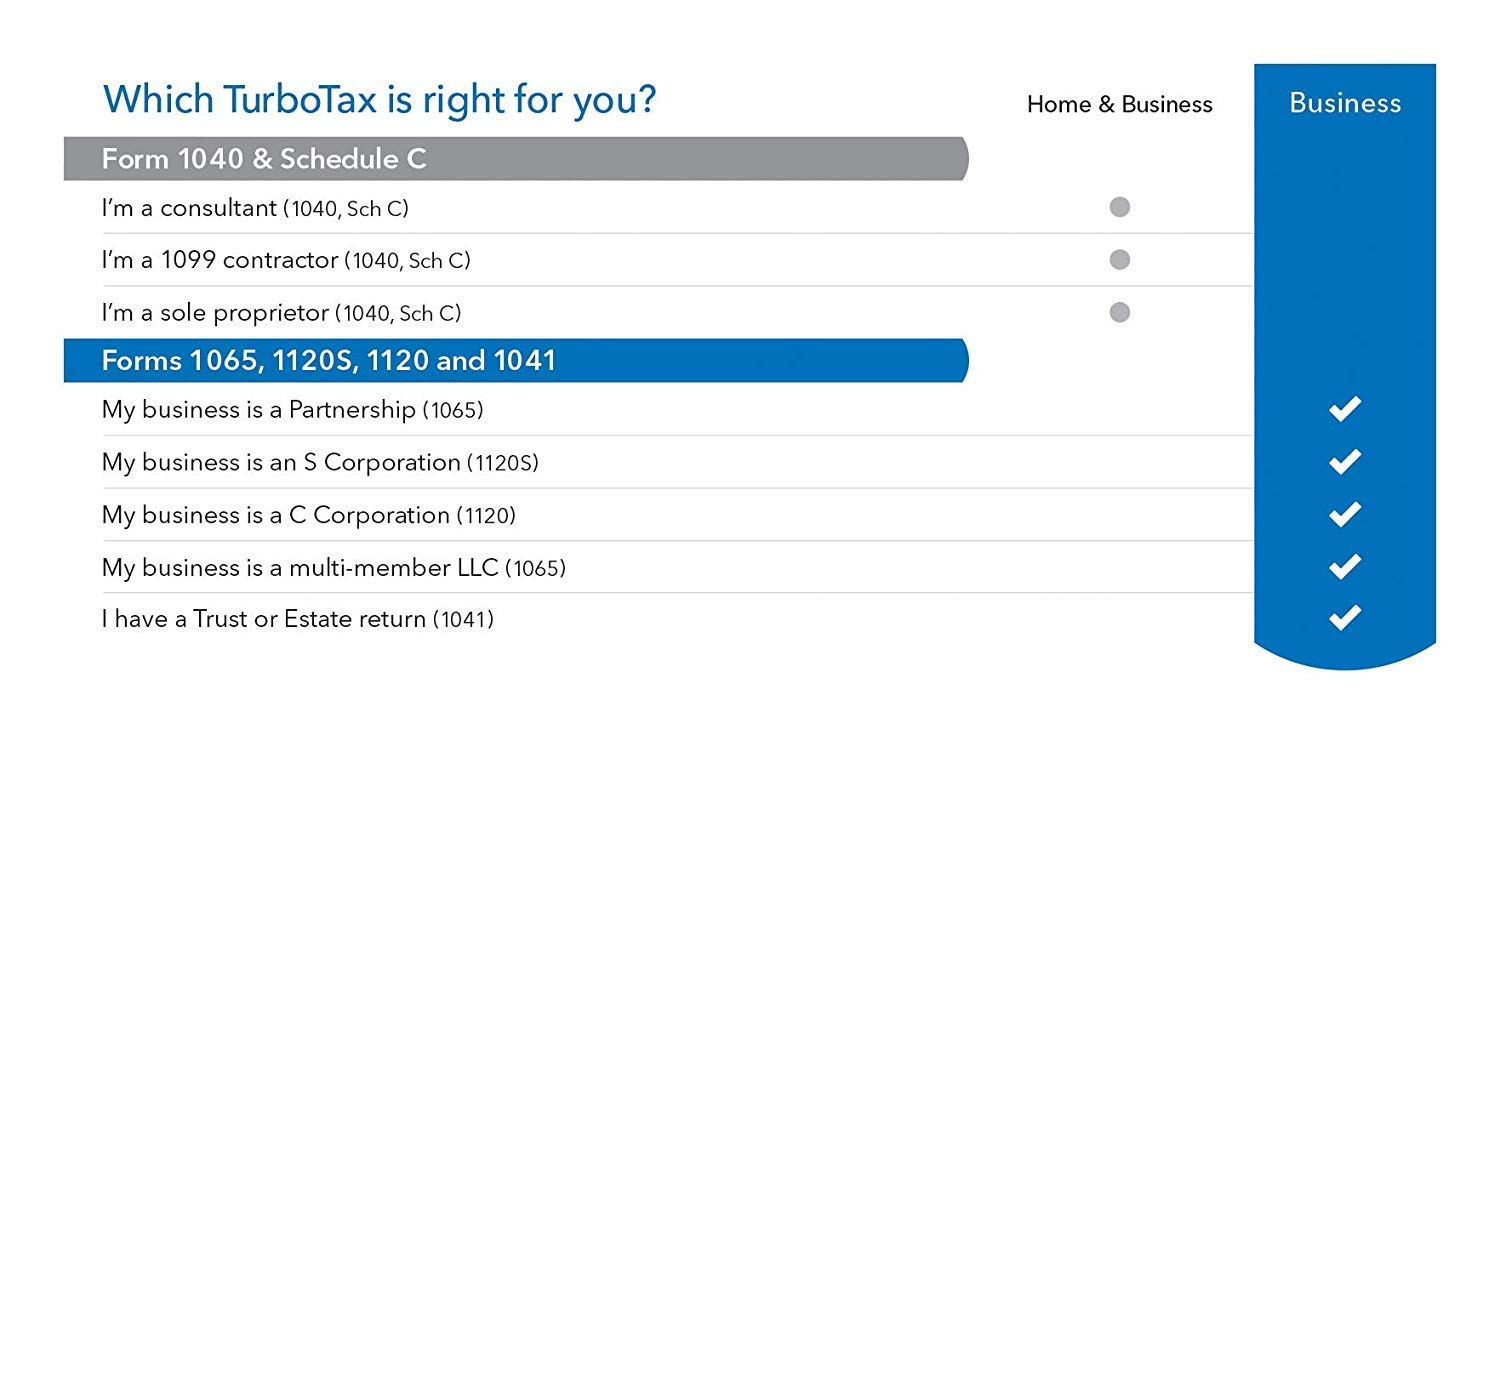 TurboTax Business 2018 VS TurboTax Home and Business 2018